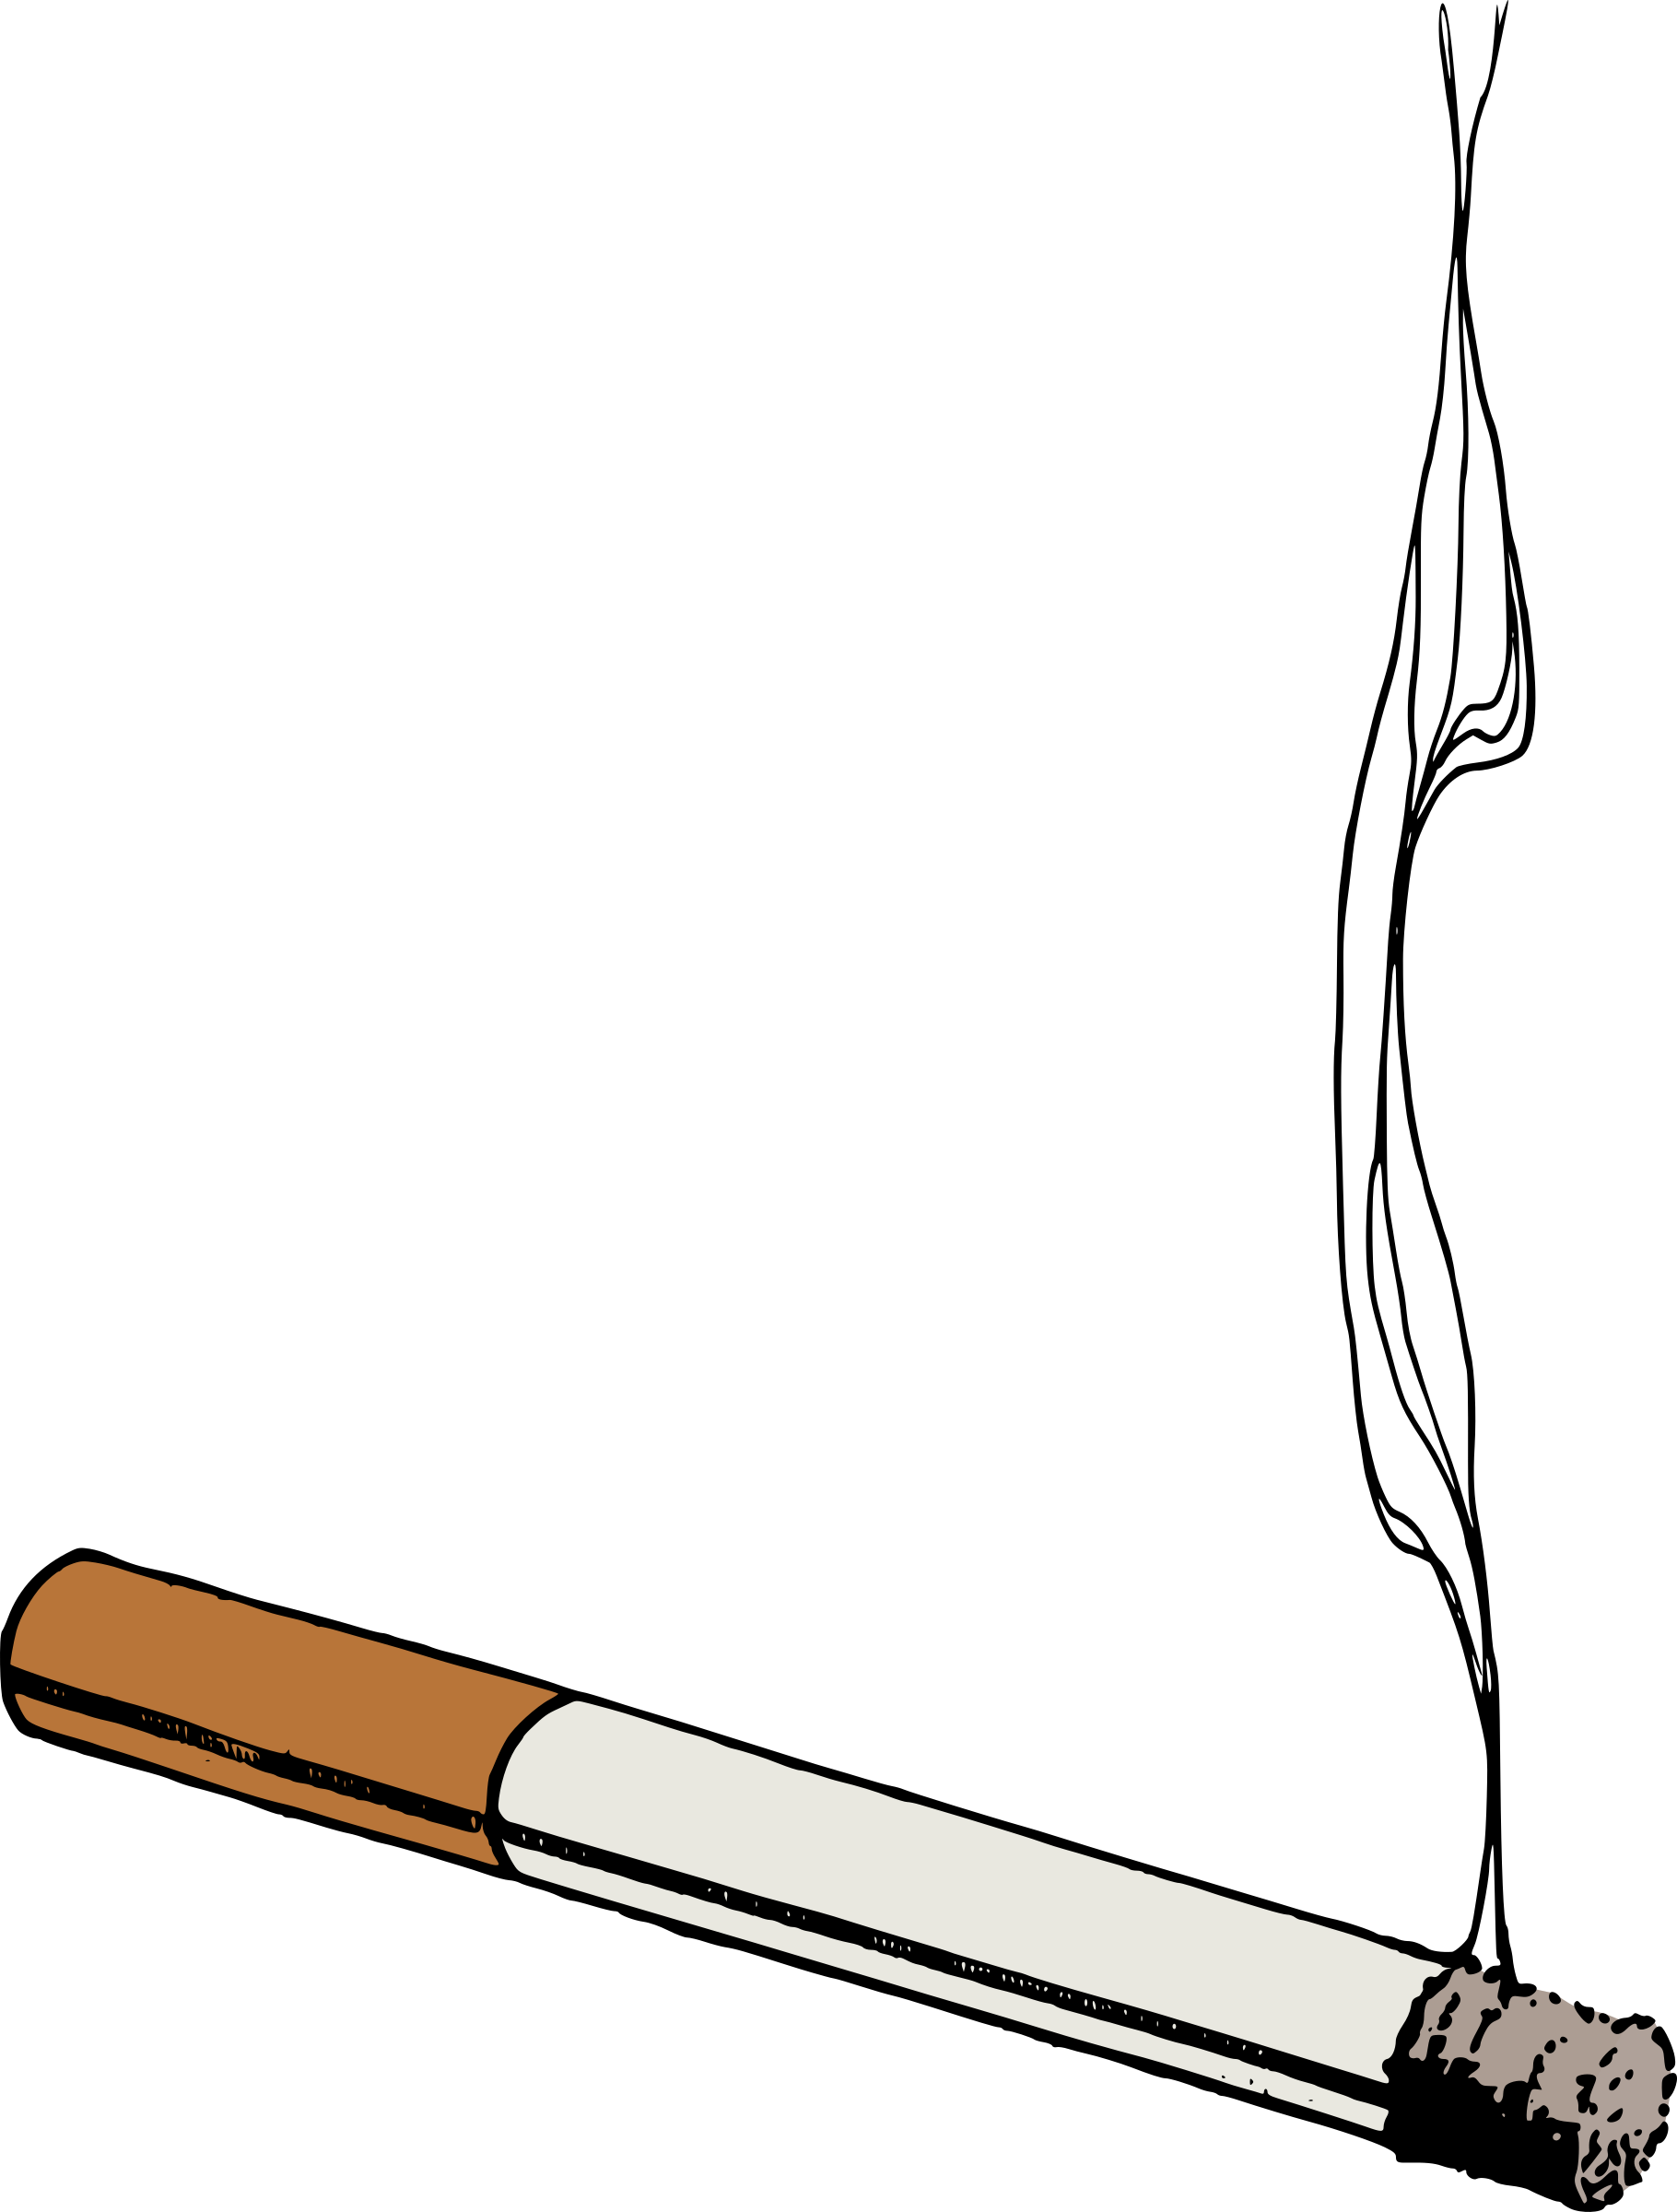 cartoon joint png